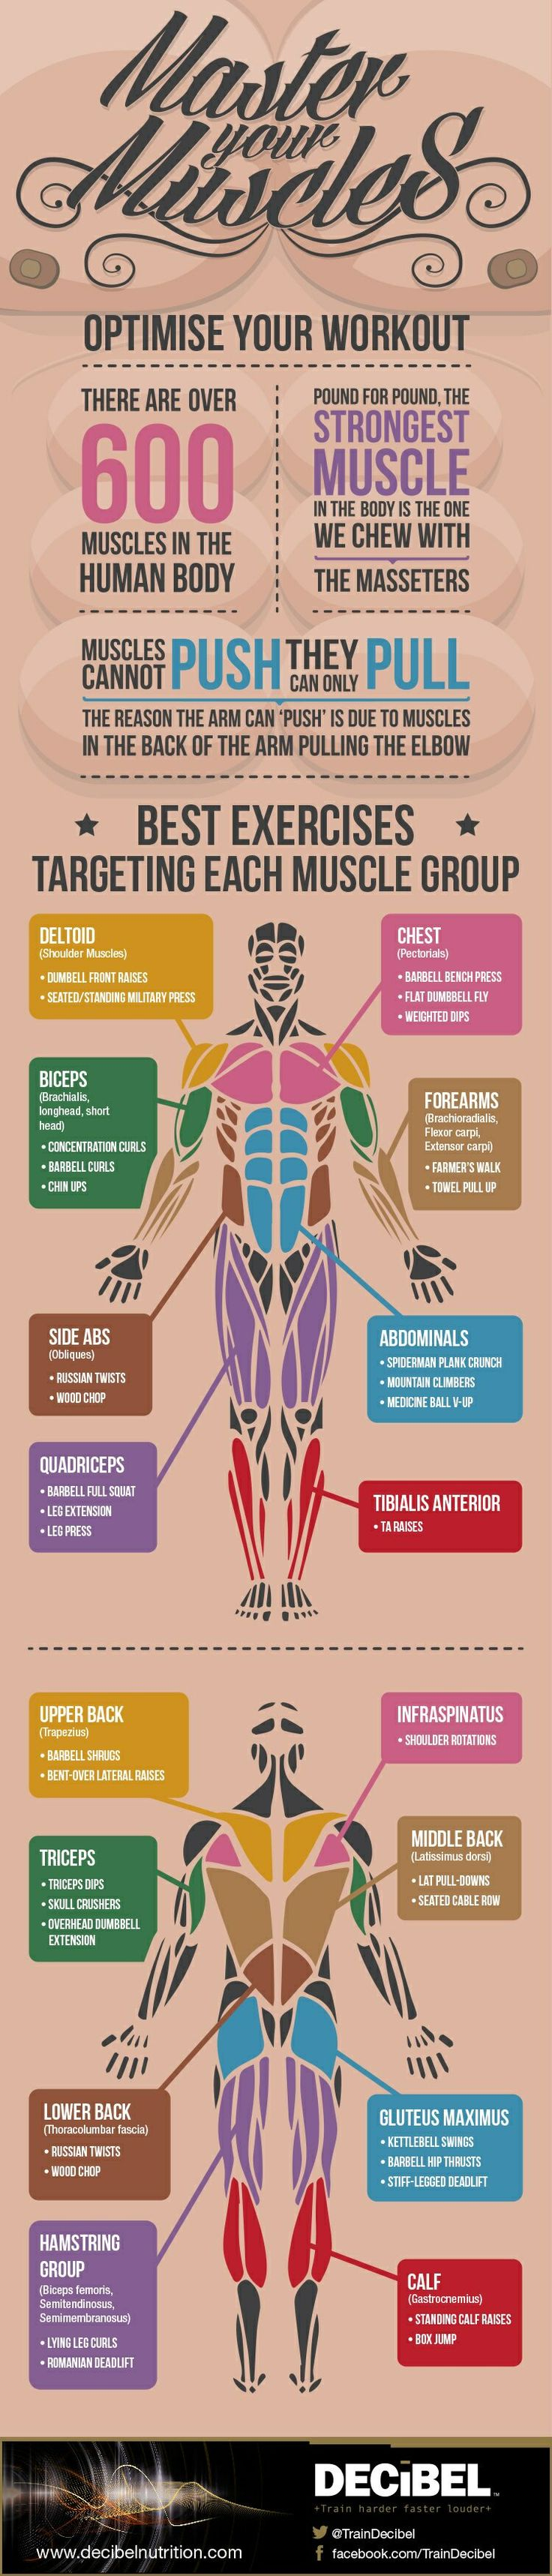 Use this one simple trick to build muscle quick Master your muscles with this #infographic on how to build muscle groups. https://www.musclesaurus.com/bodybuilding/